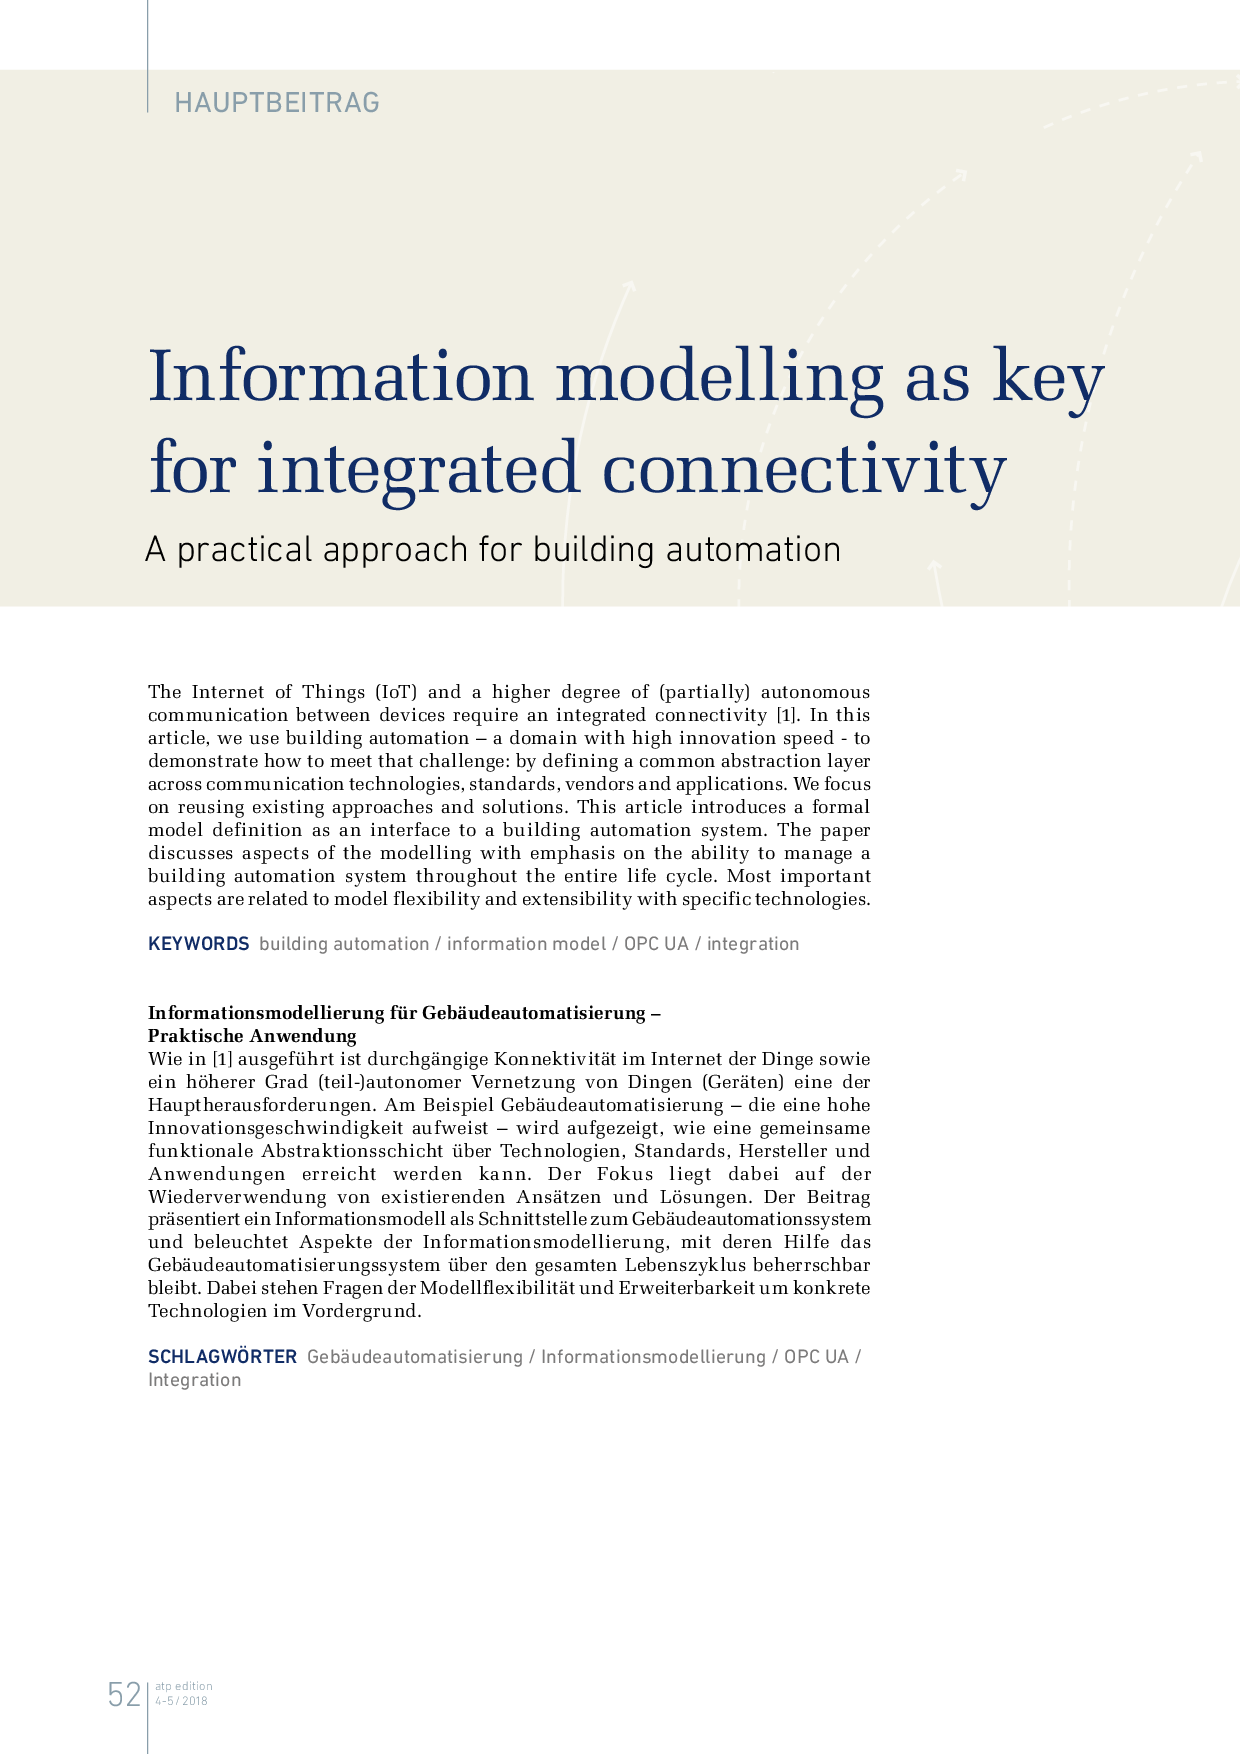 Information modelling as key for integrated connectivity